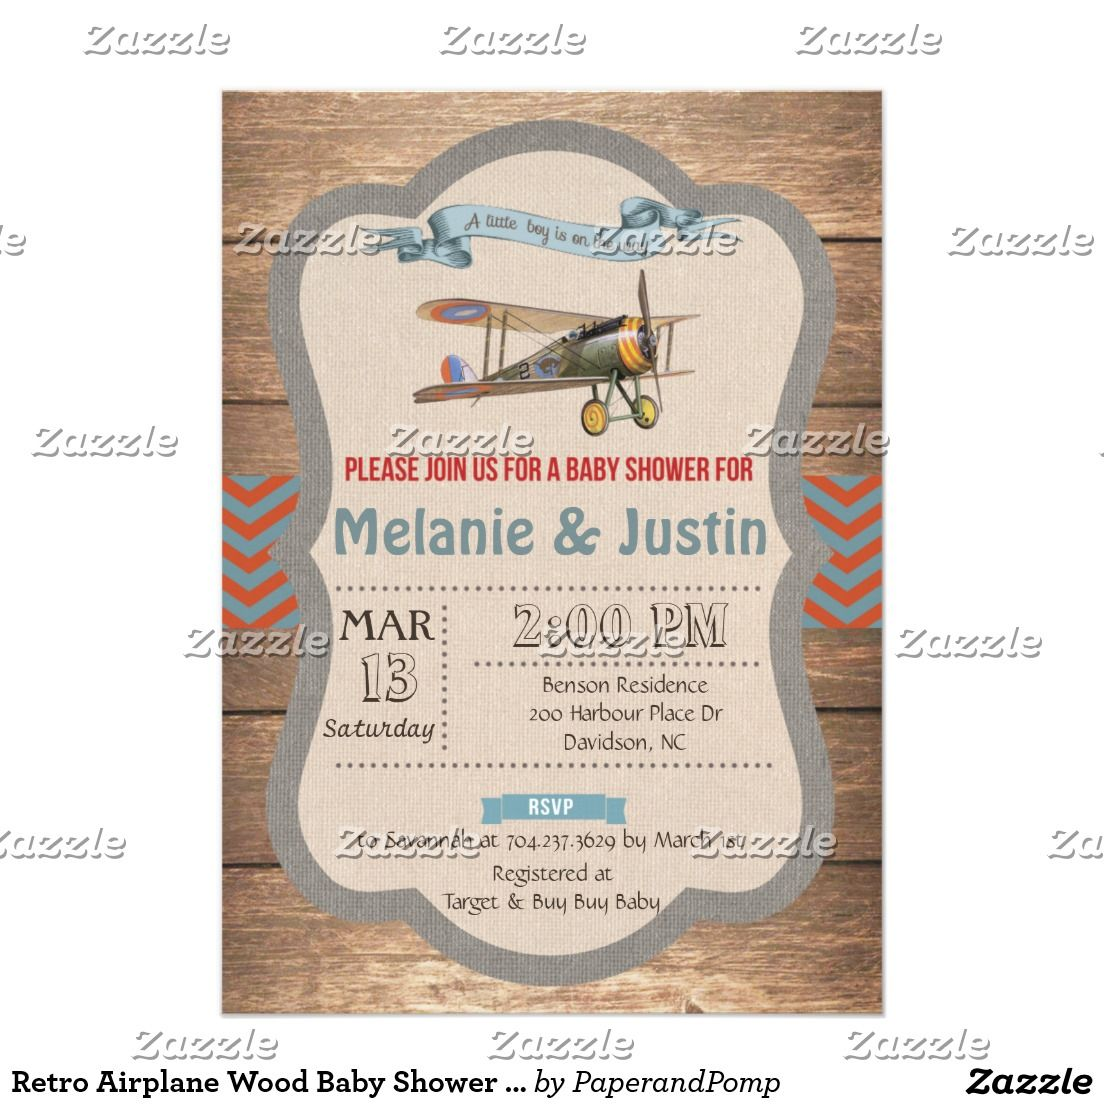 Retro Airplane Wood Baby Shower Invitation